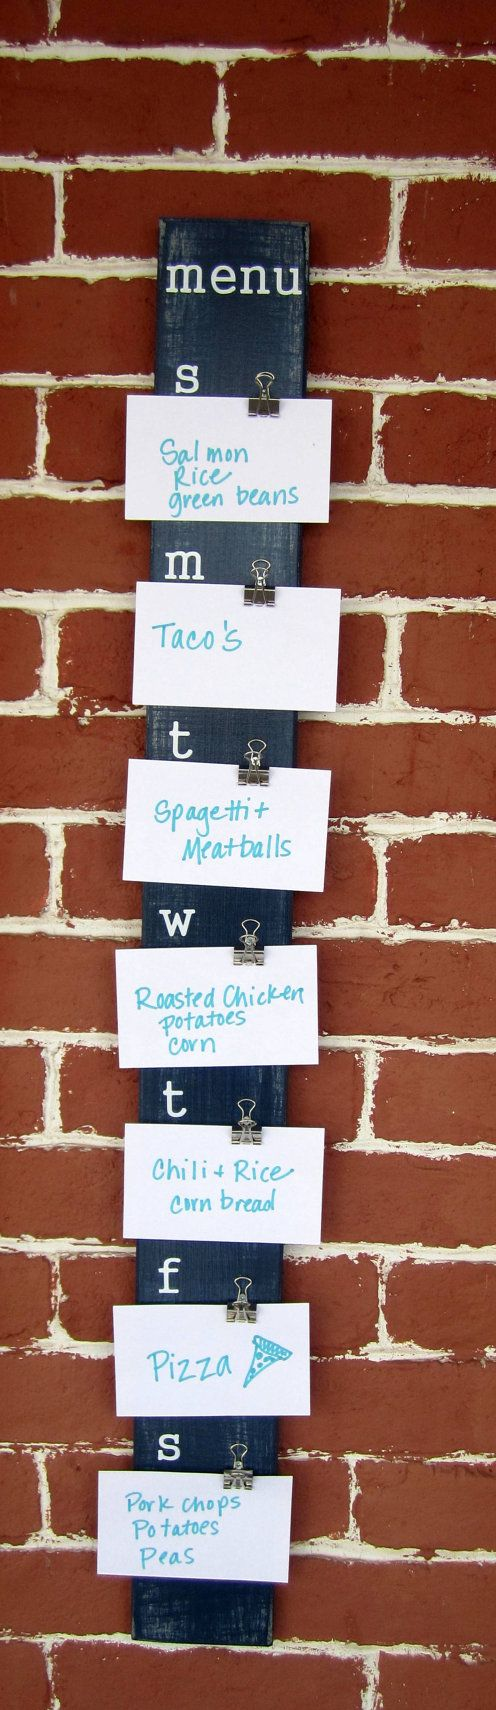 """Weekly Planning Menu Board - 3.75"""" x 36.5"""" - Using index cards rather than chalkboard paint. No need to wipe down if you need to rearrange a meal! Genius."""